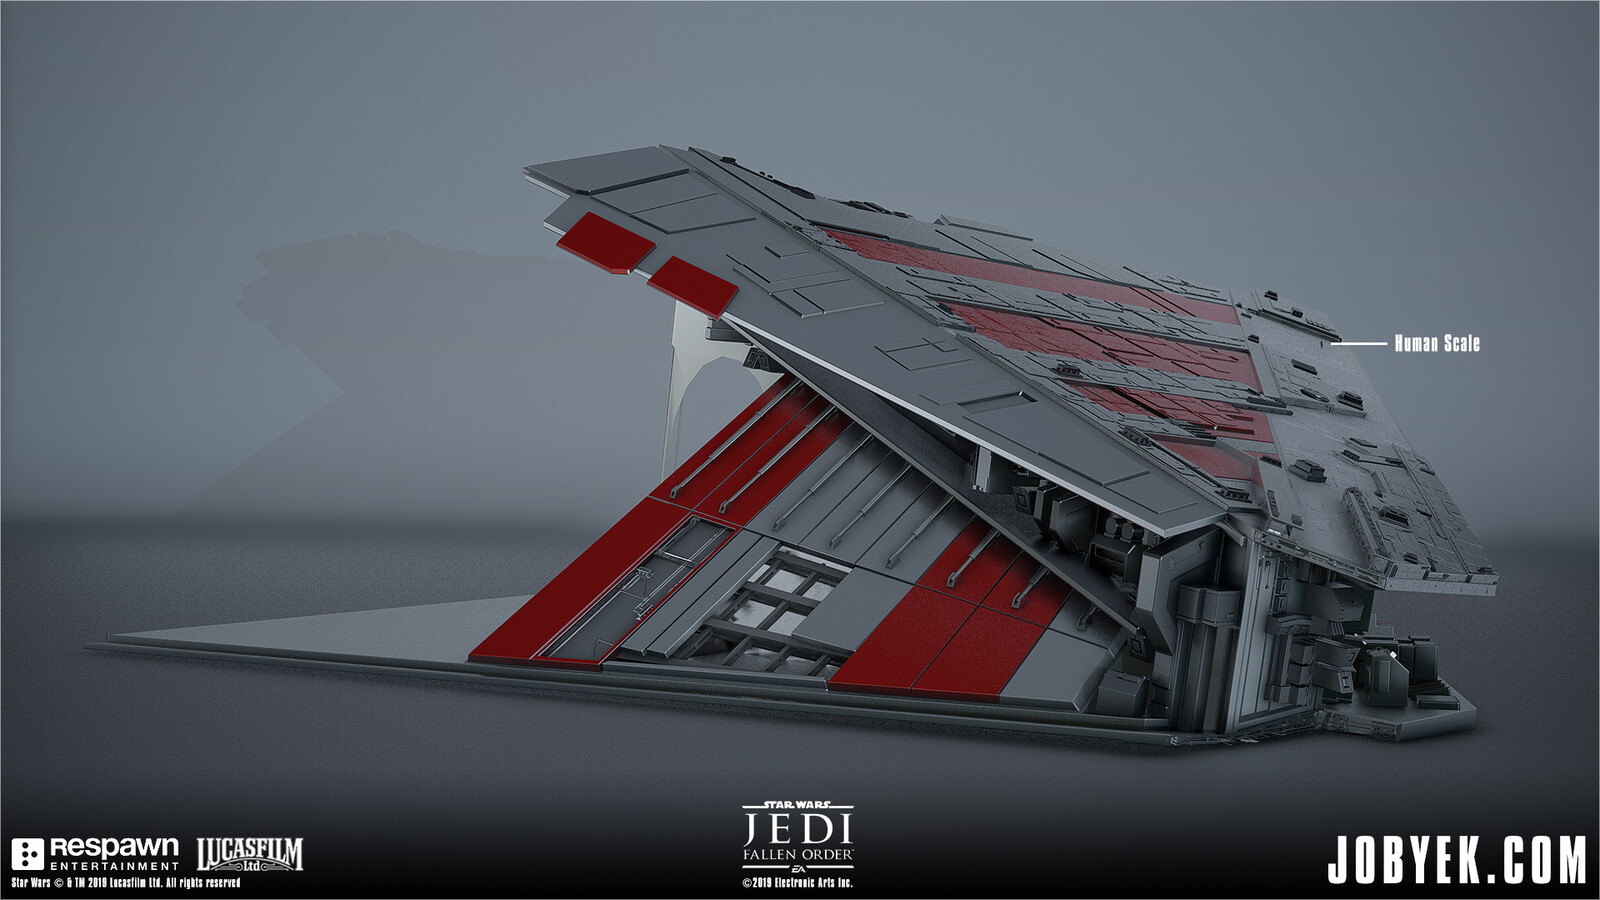 Modeling work on Venator Wing that is used and navigated on throughout the level. This was supplemented by smaller modular panels and such for added detail in-engine. Initial base model from DICE.